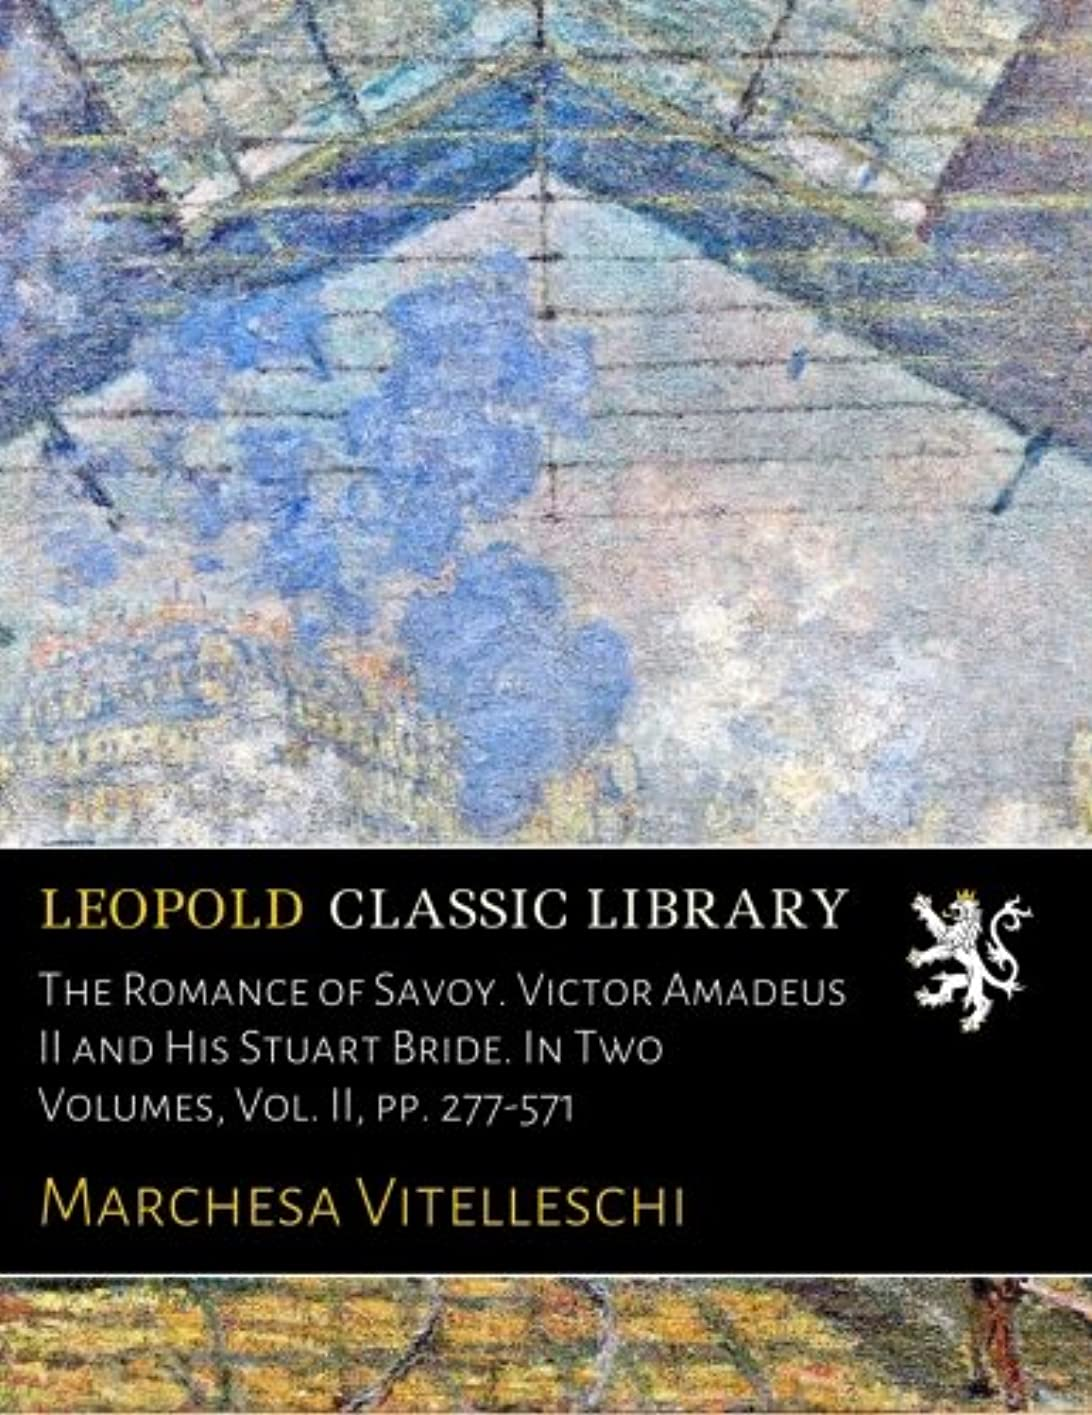 崇拝する生まれ交流するThe Romance of Savoy. Victor Amadeus II and His Stuart Bride. In Two Volumes, Vol. II, pp. 277-571